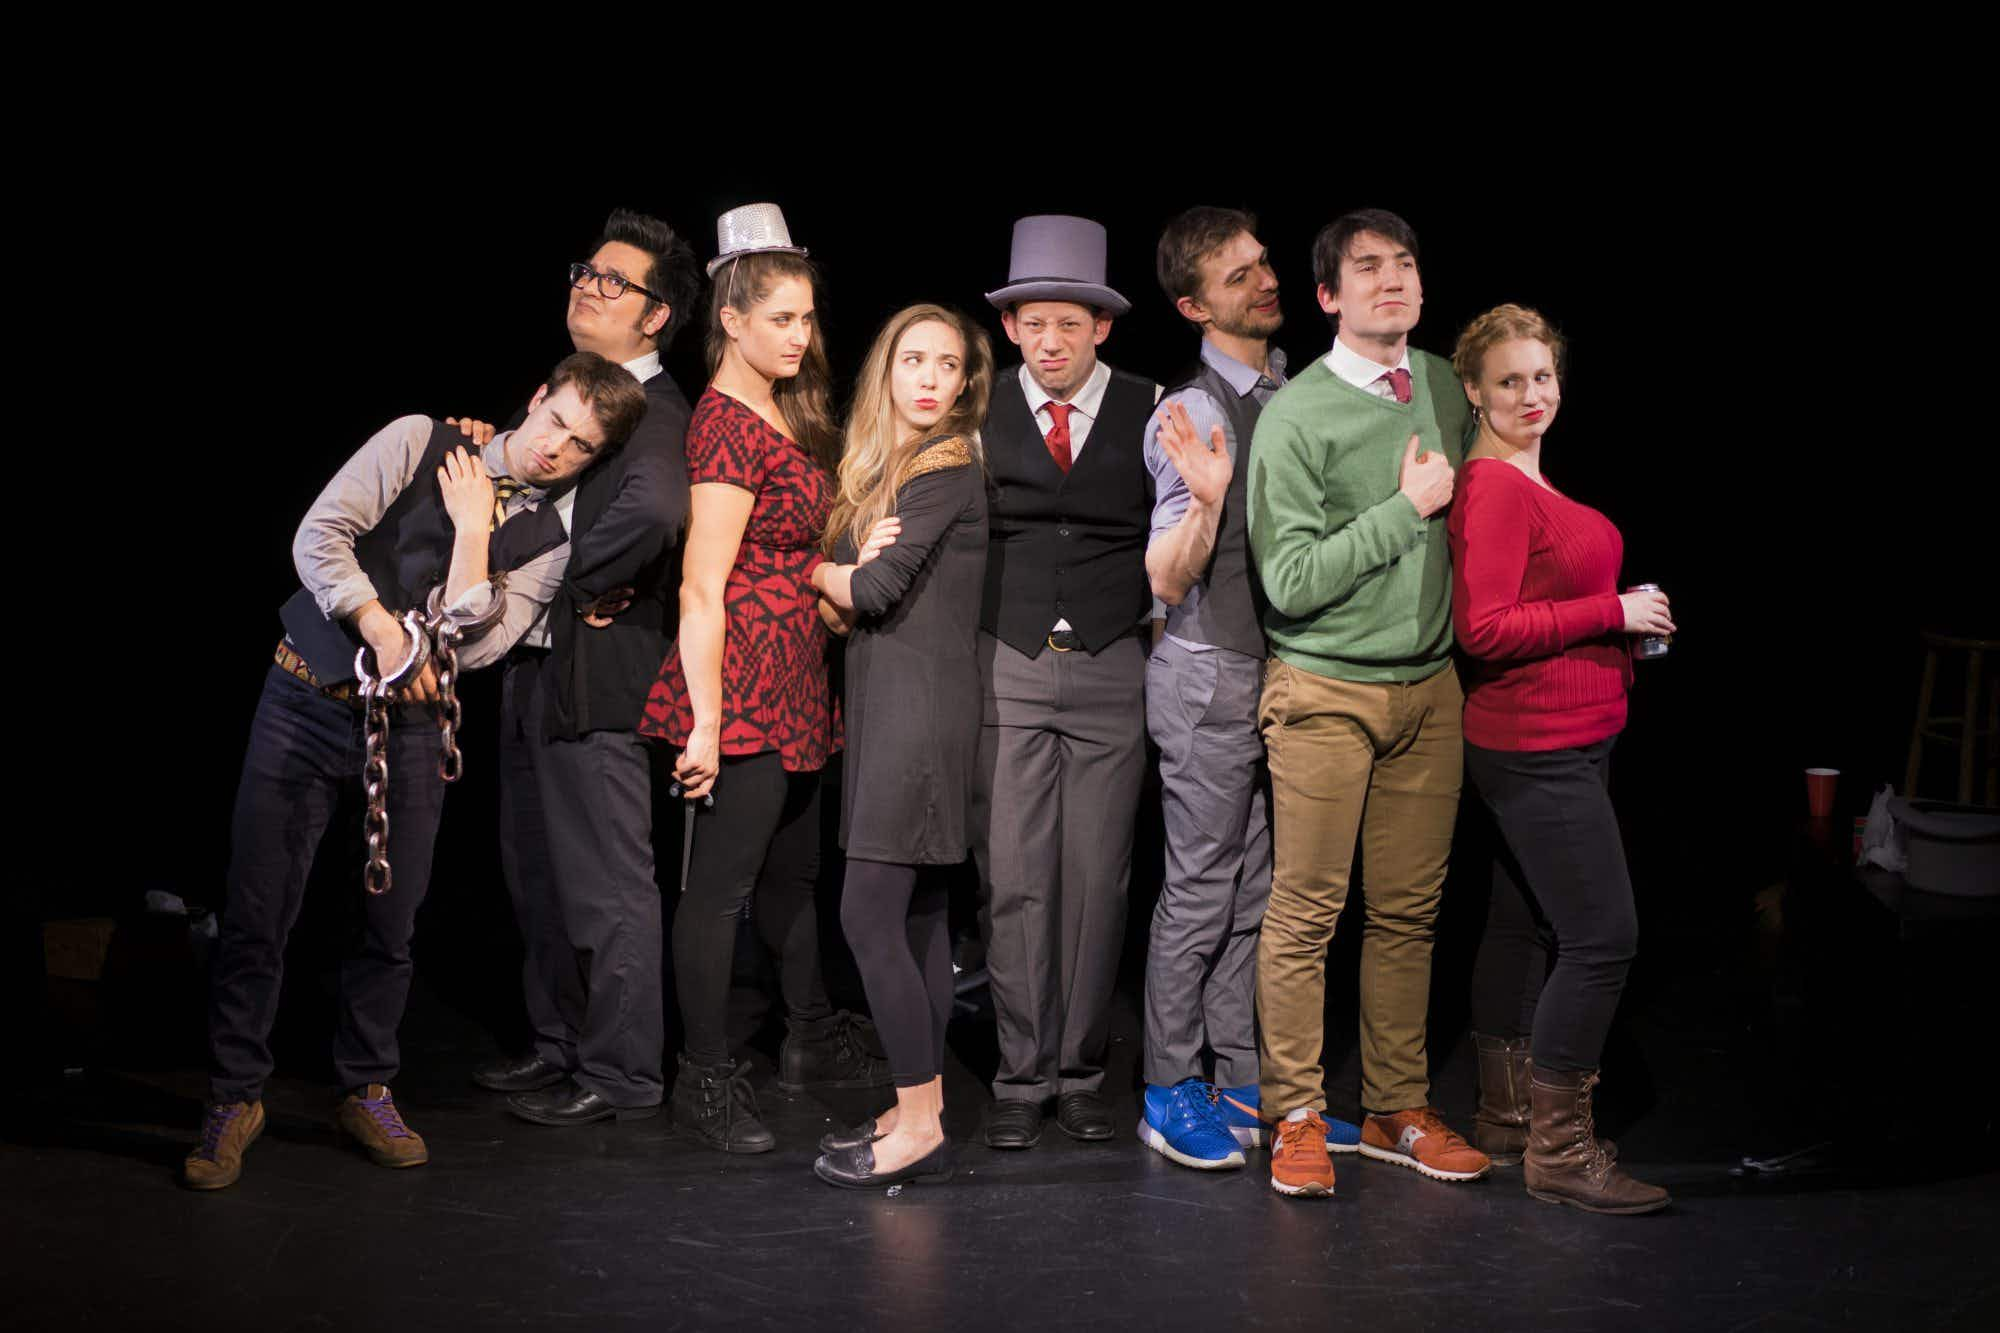 NYC's Ten Bones Theatre Company puts on a show with a little help from the audience